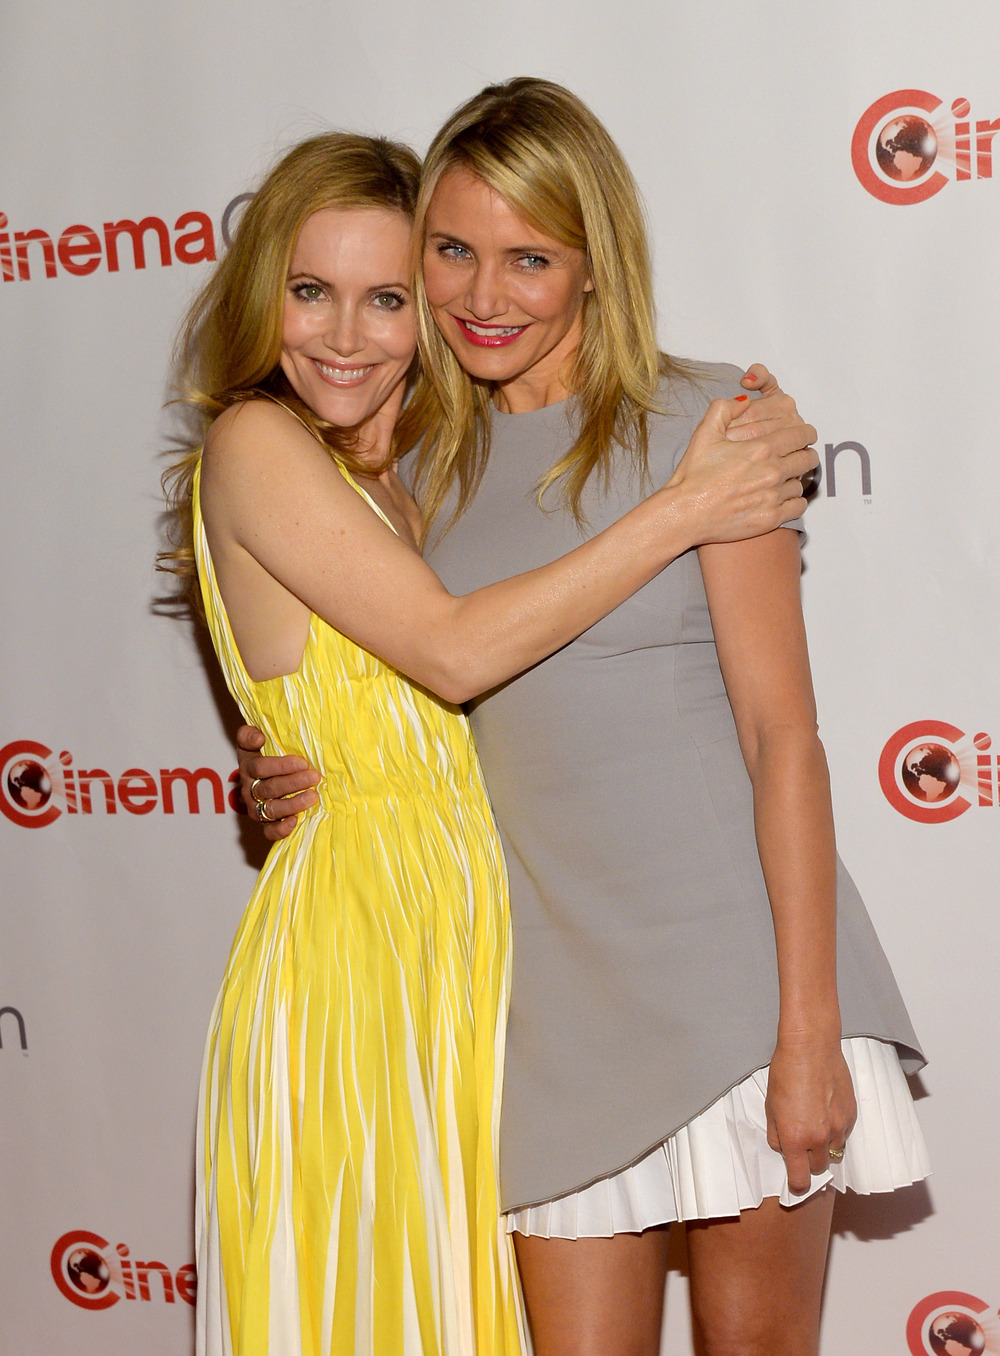 Has Cameron Diaz Ever Been With a Woman? (VIDEO)